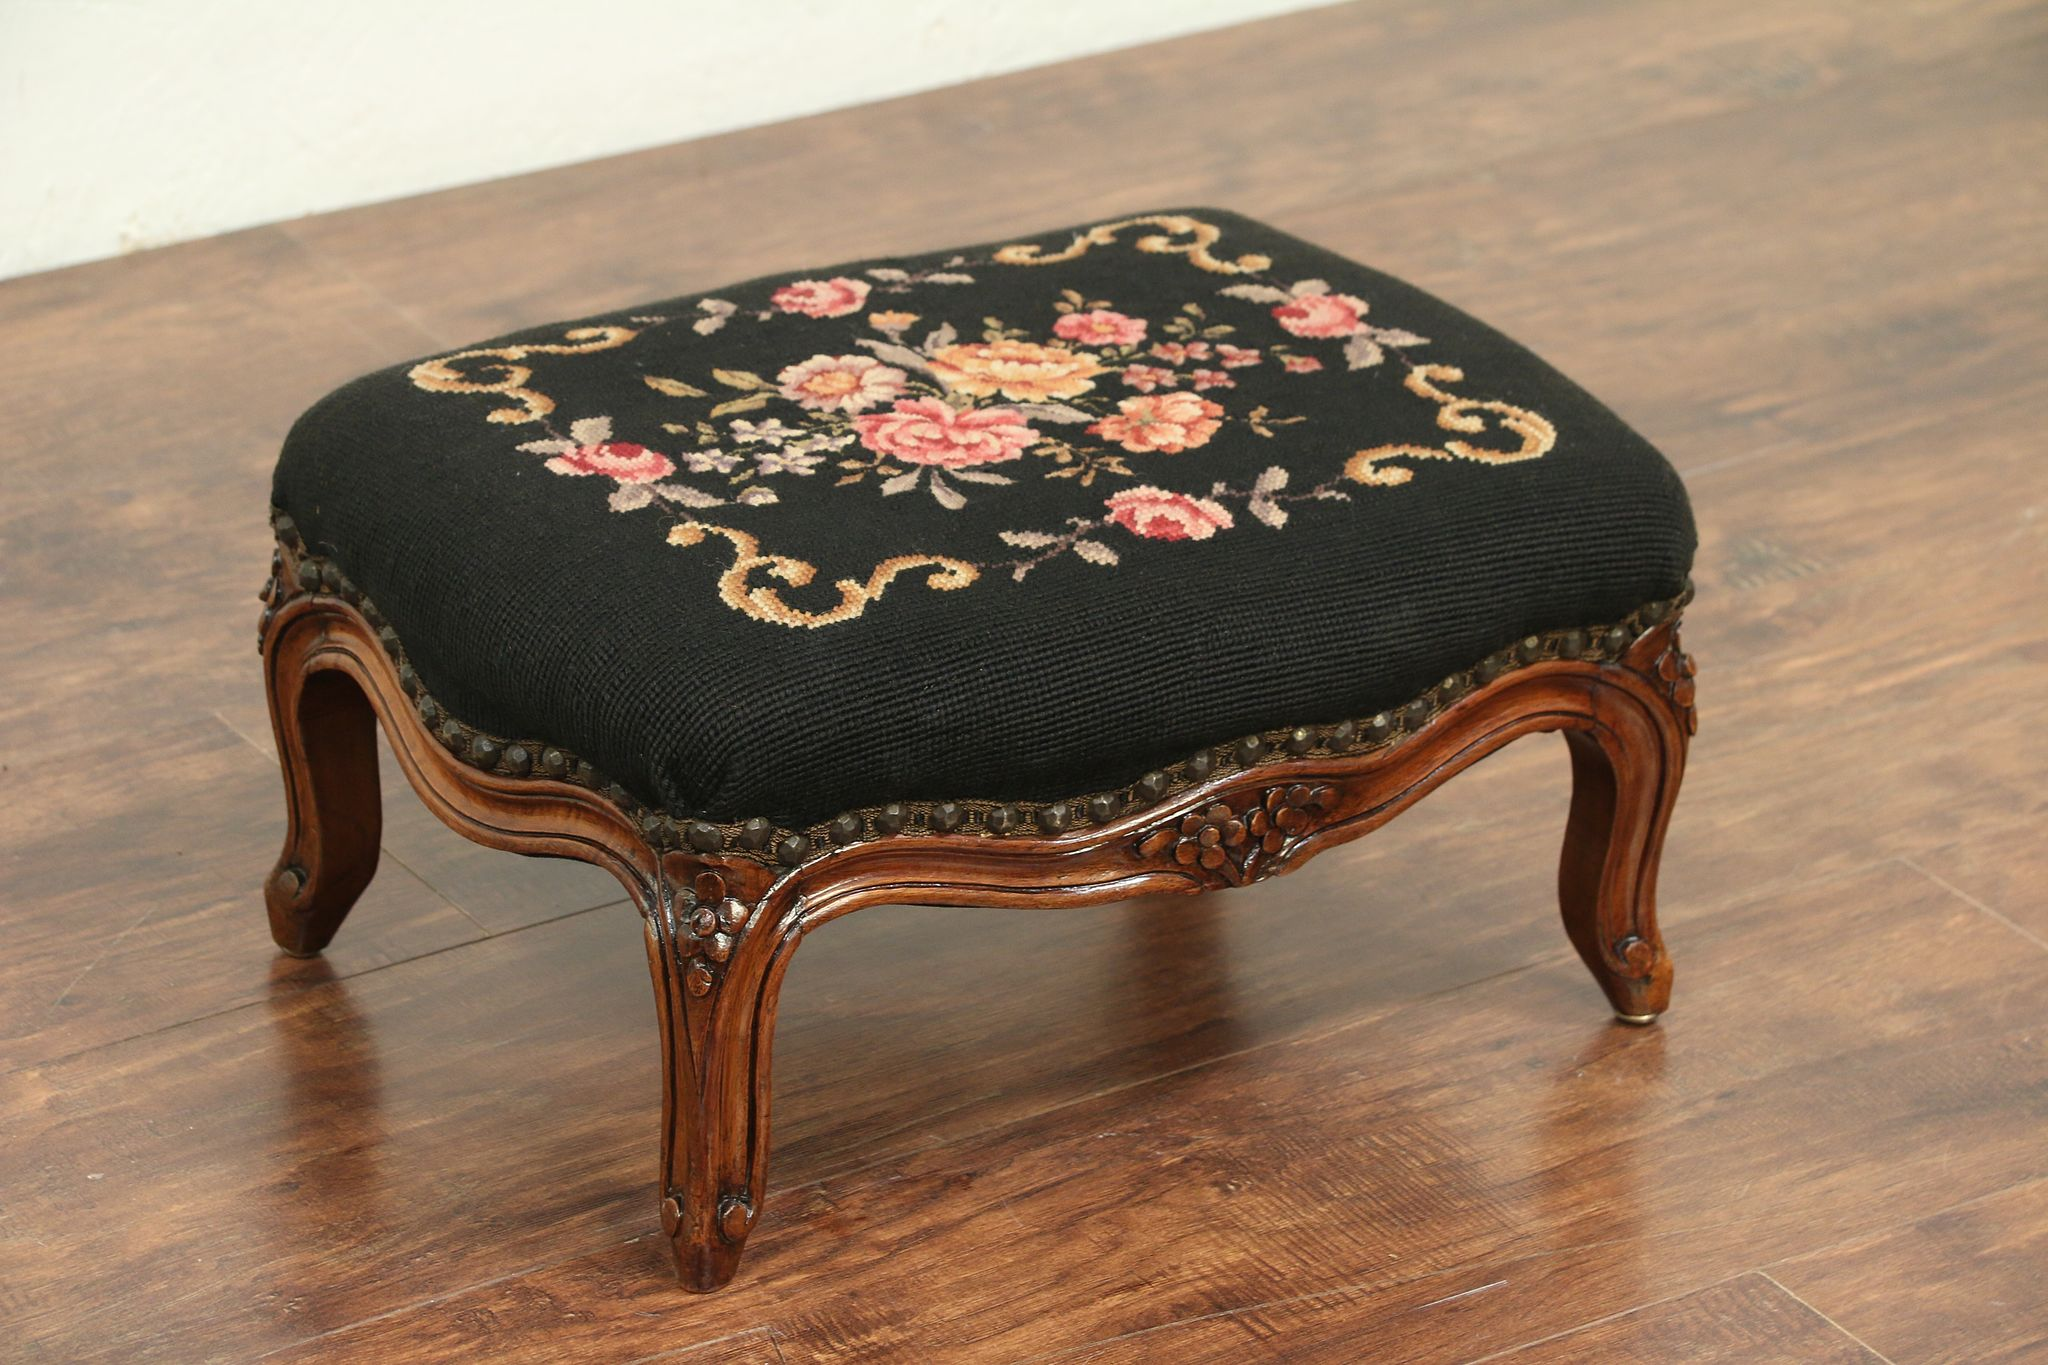 Pre-1800 Antique Curved Foot Stool